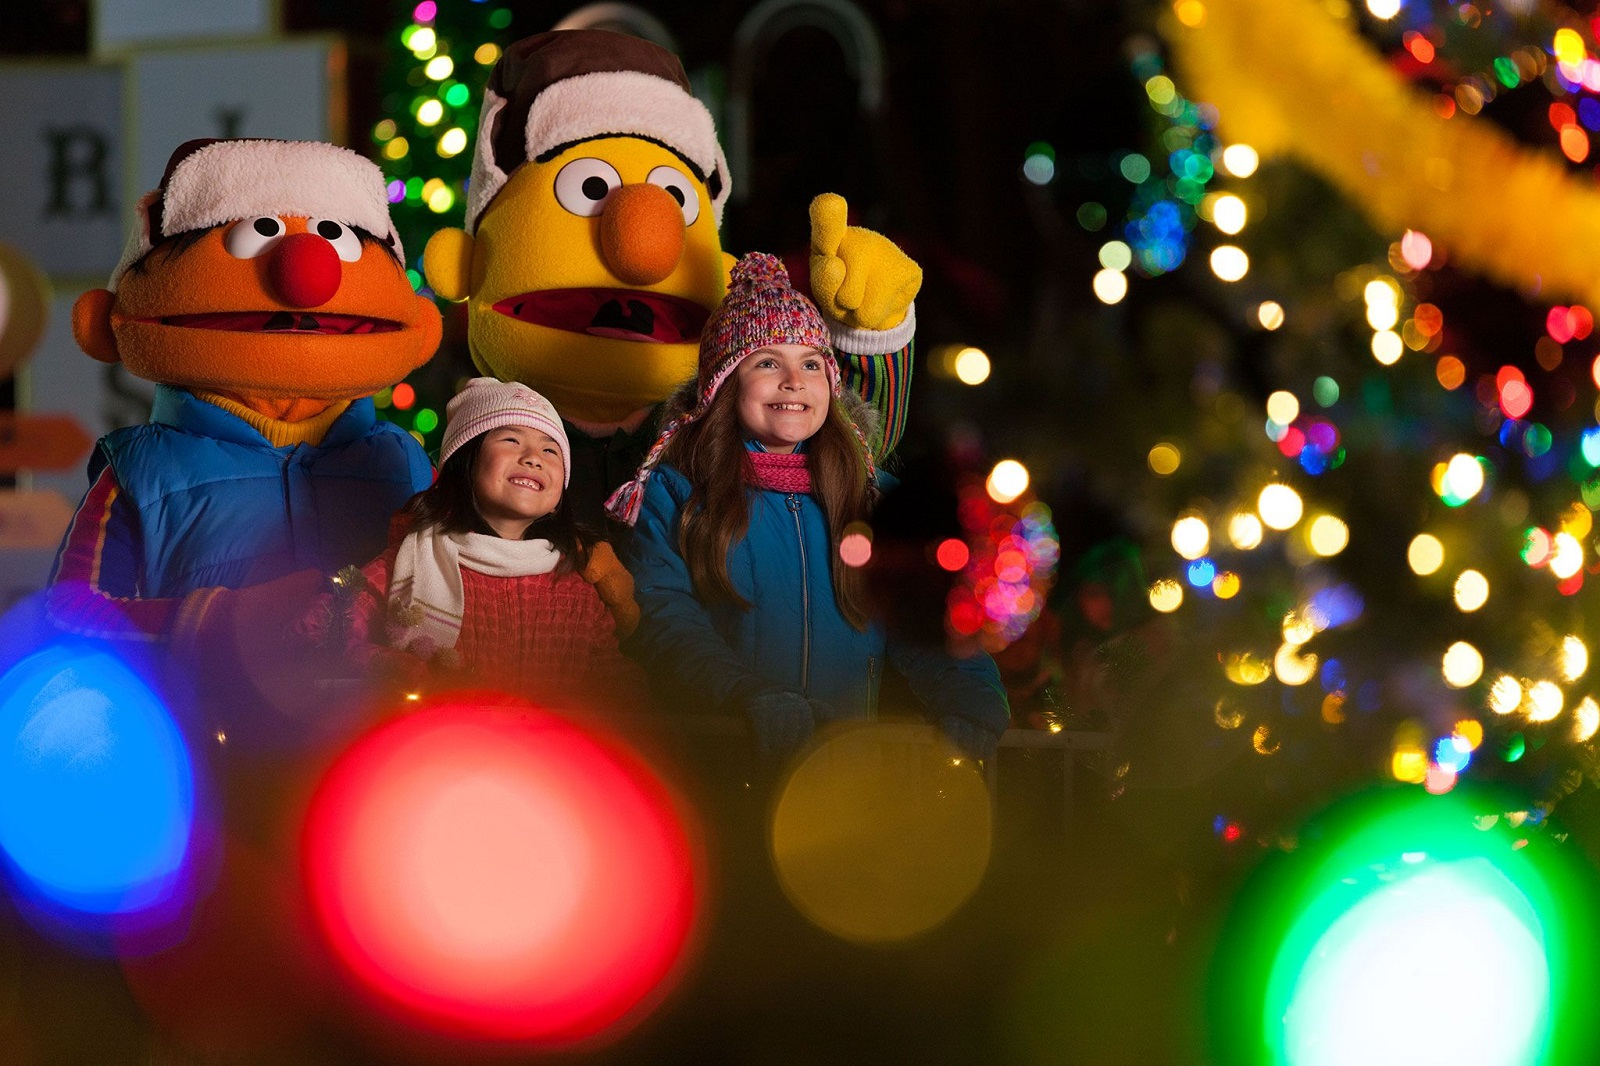 Seaworld Christmas Celebration Orlando Dates 2020 SeaWorld's Christmas Celebration returns to celebrate 2019 Holiday